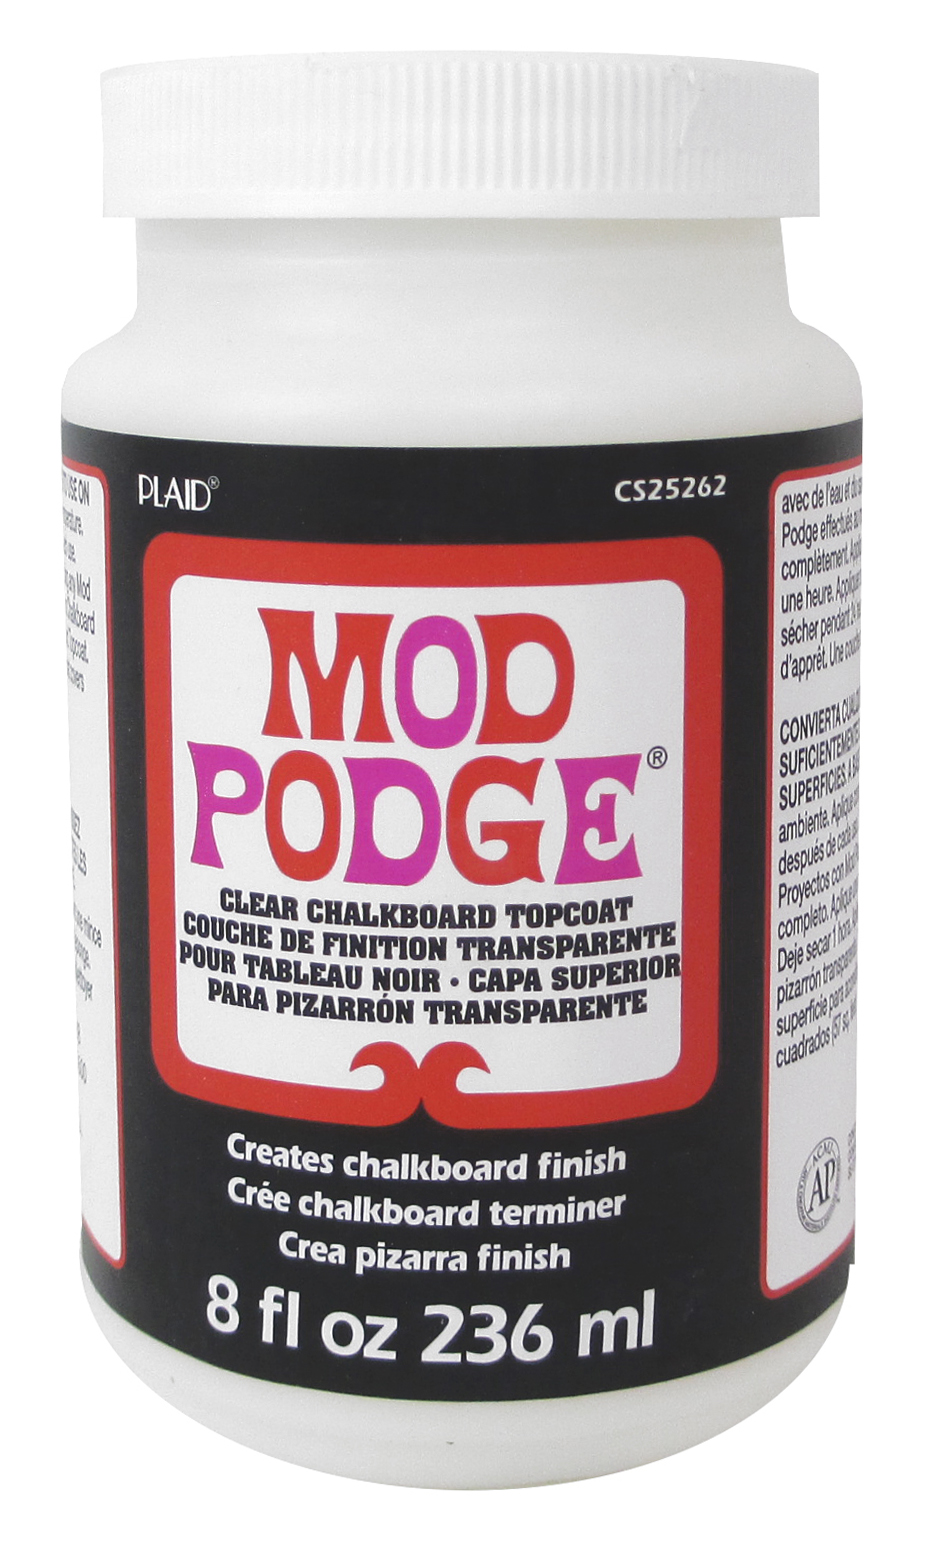 Mod Podge Chalkboard Topcoat - 8oz